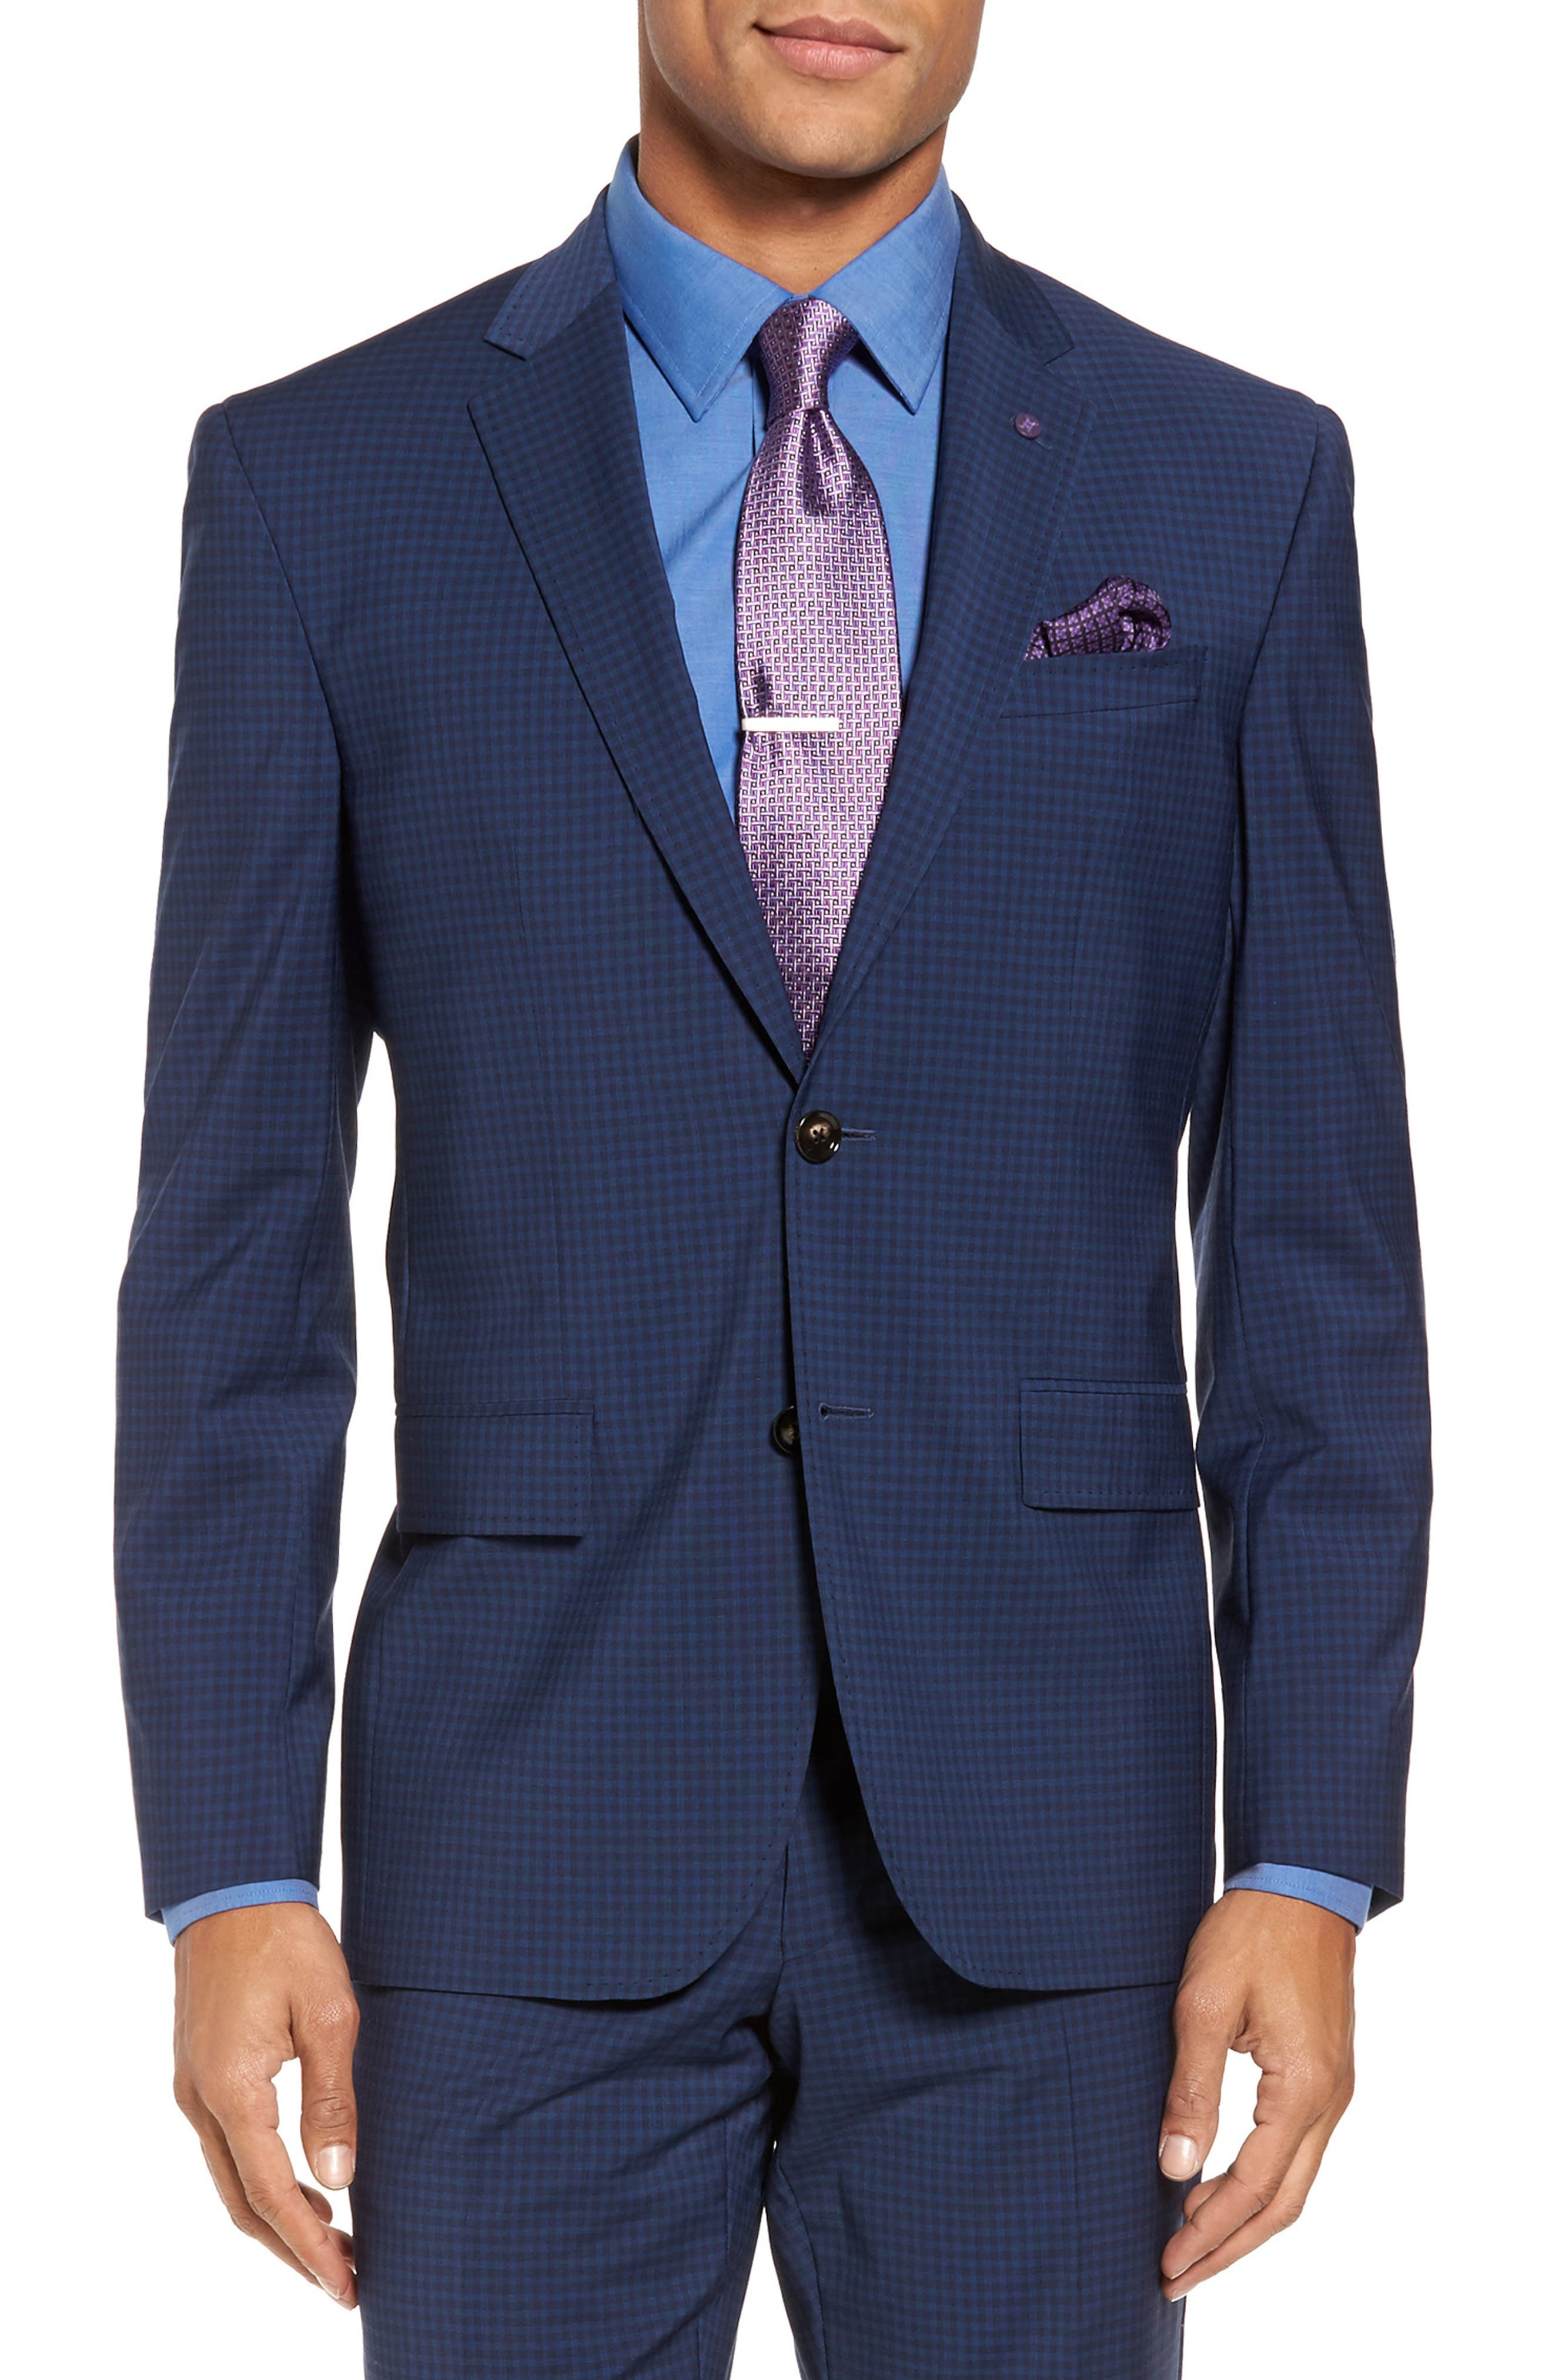 Jay Trim Fit Stretch Wool Suit,                             Alternate thumbnail 5, color,                             Blue